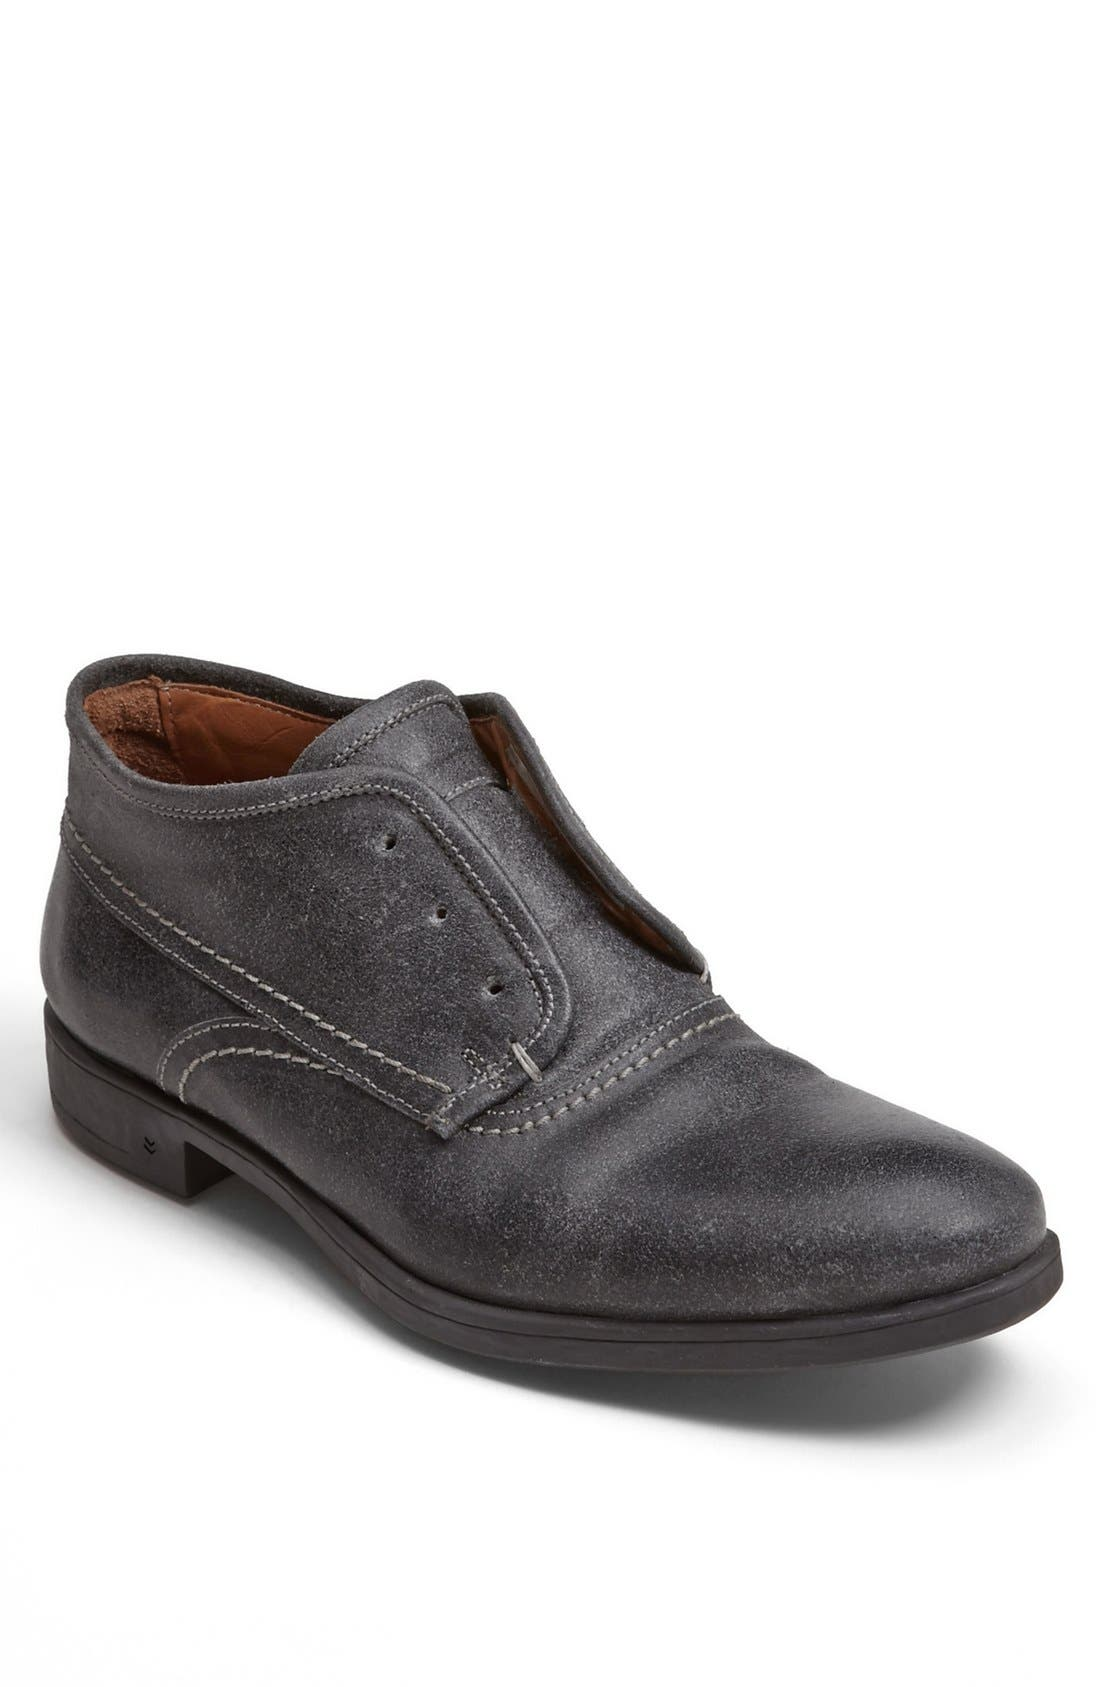 Alternate Image 1 Selected - John Varvatos Collection 'Dylan' Laceless Chukka Boot